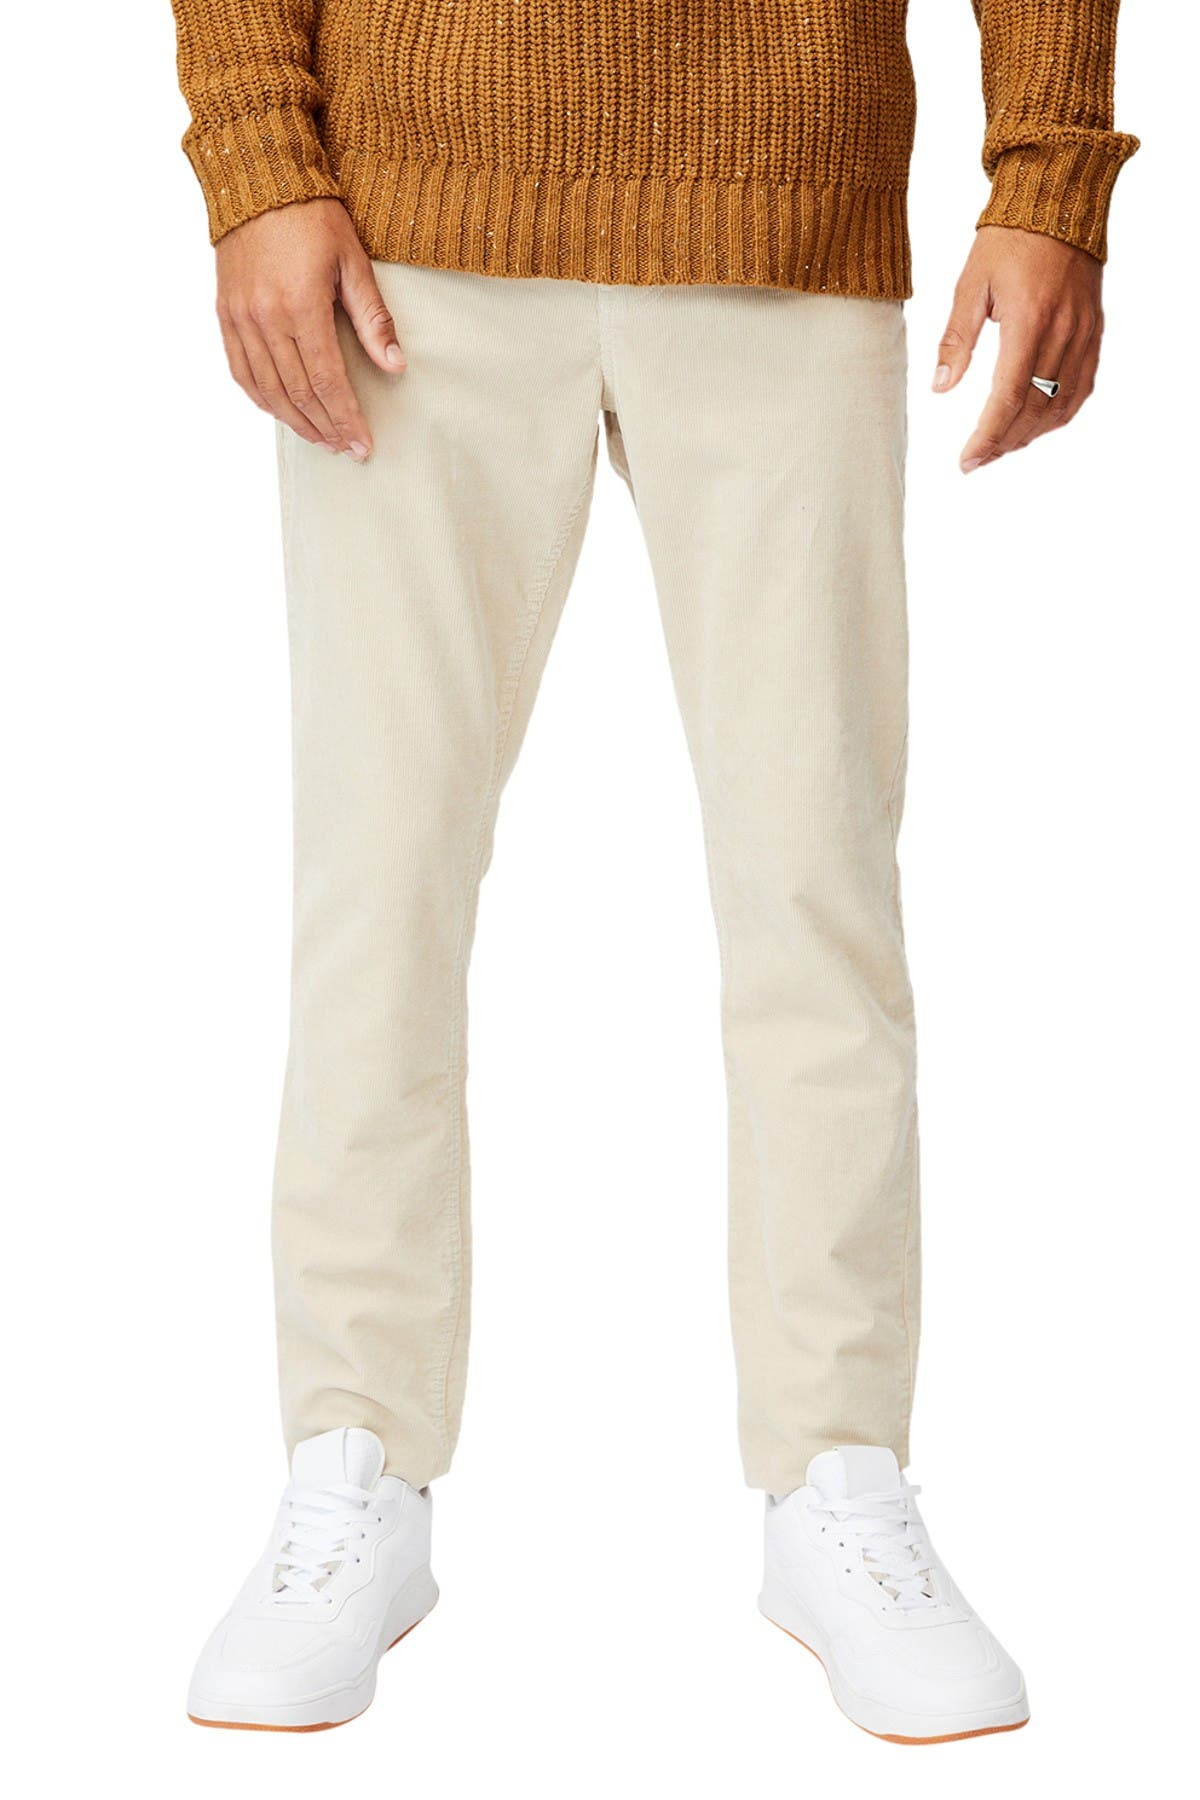 Image of Cotton On Slim Fit Jeans